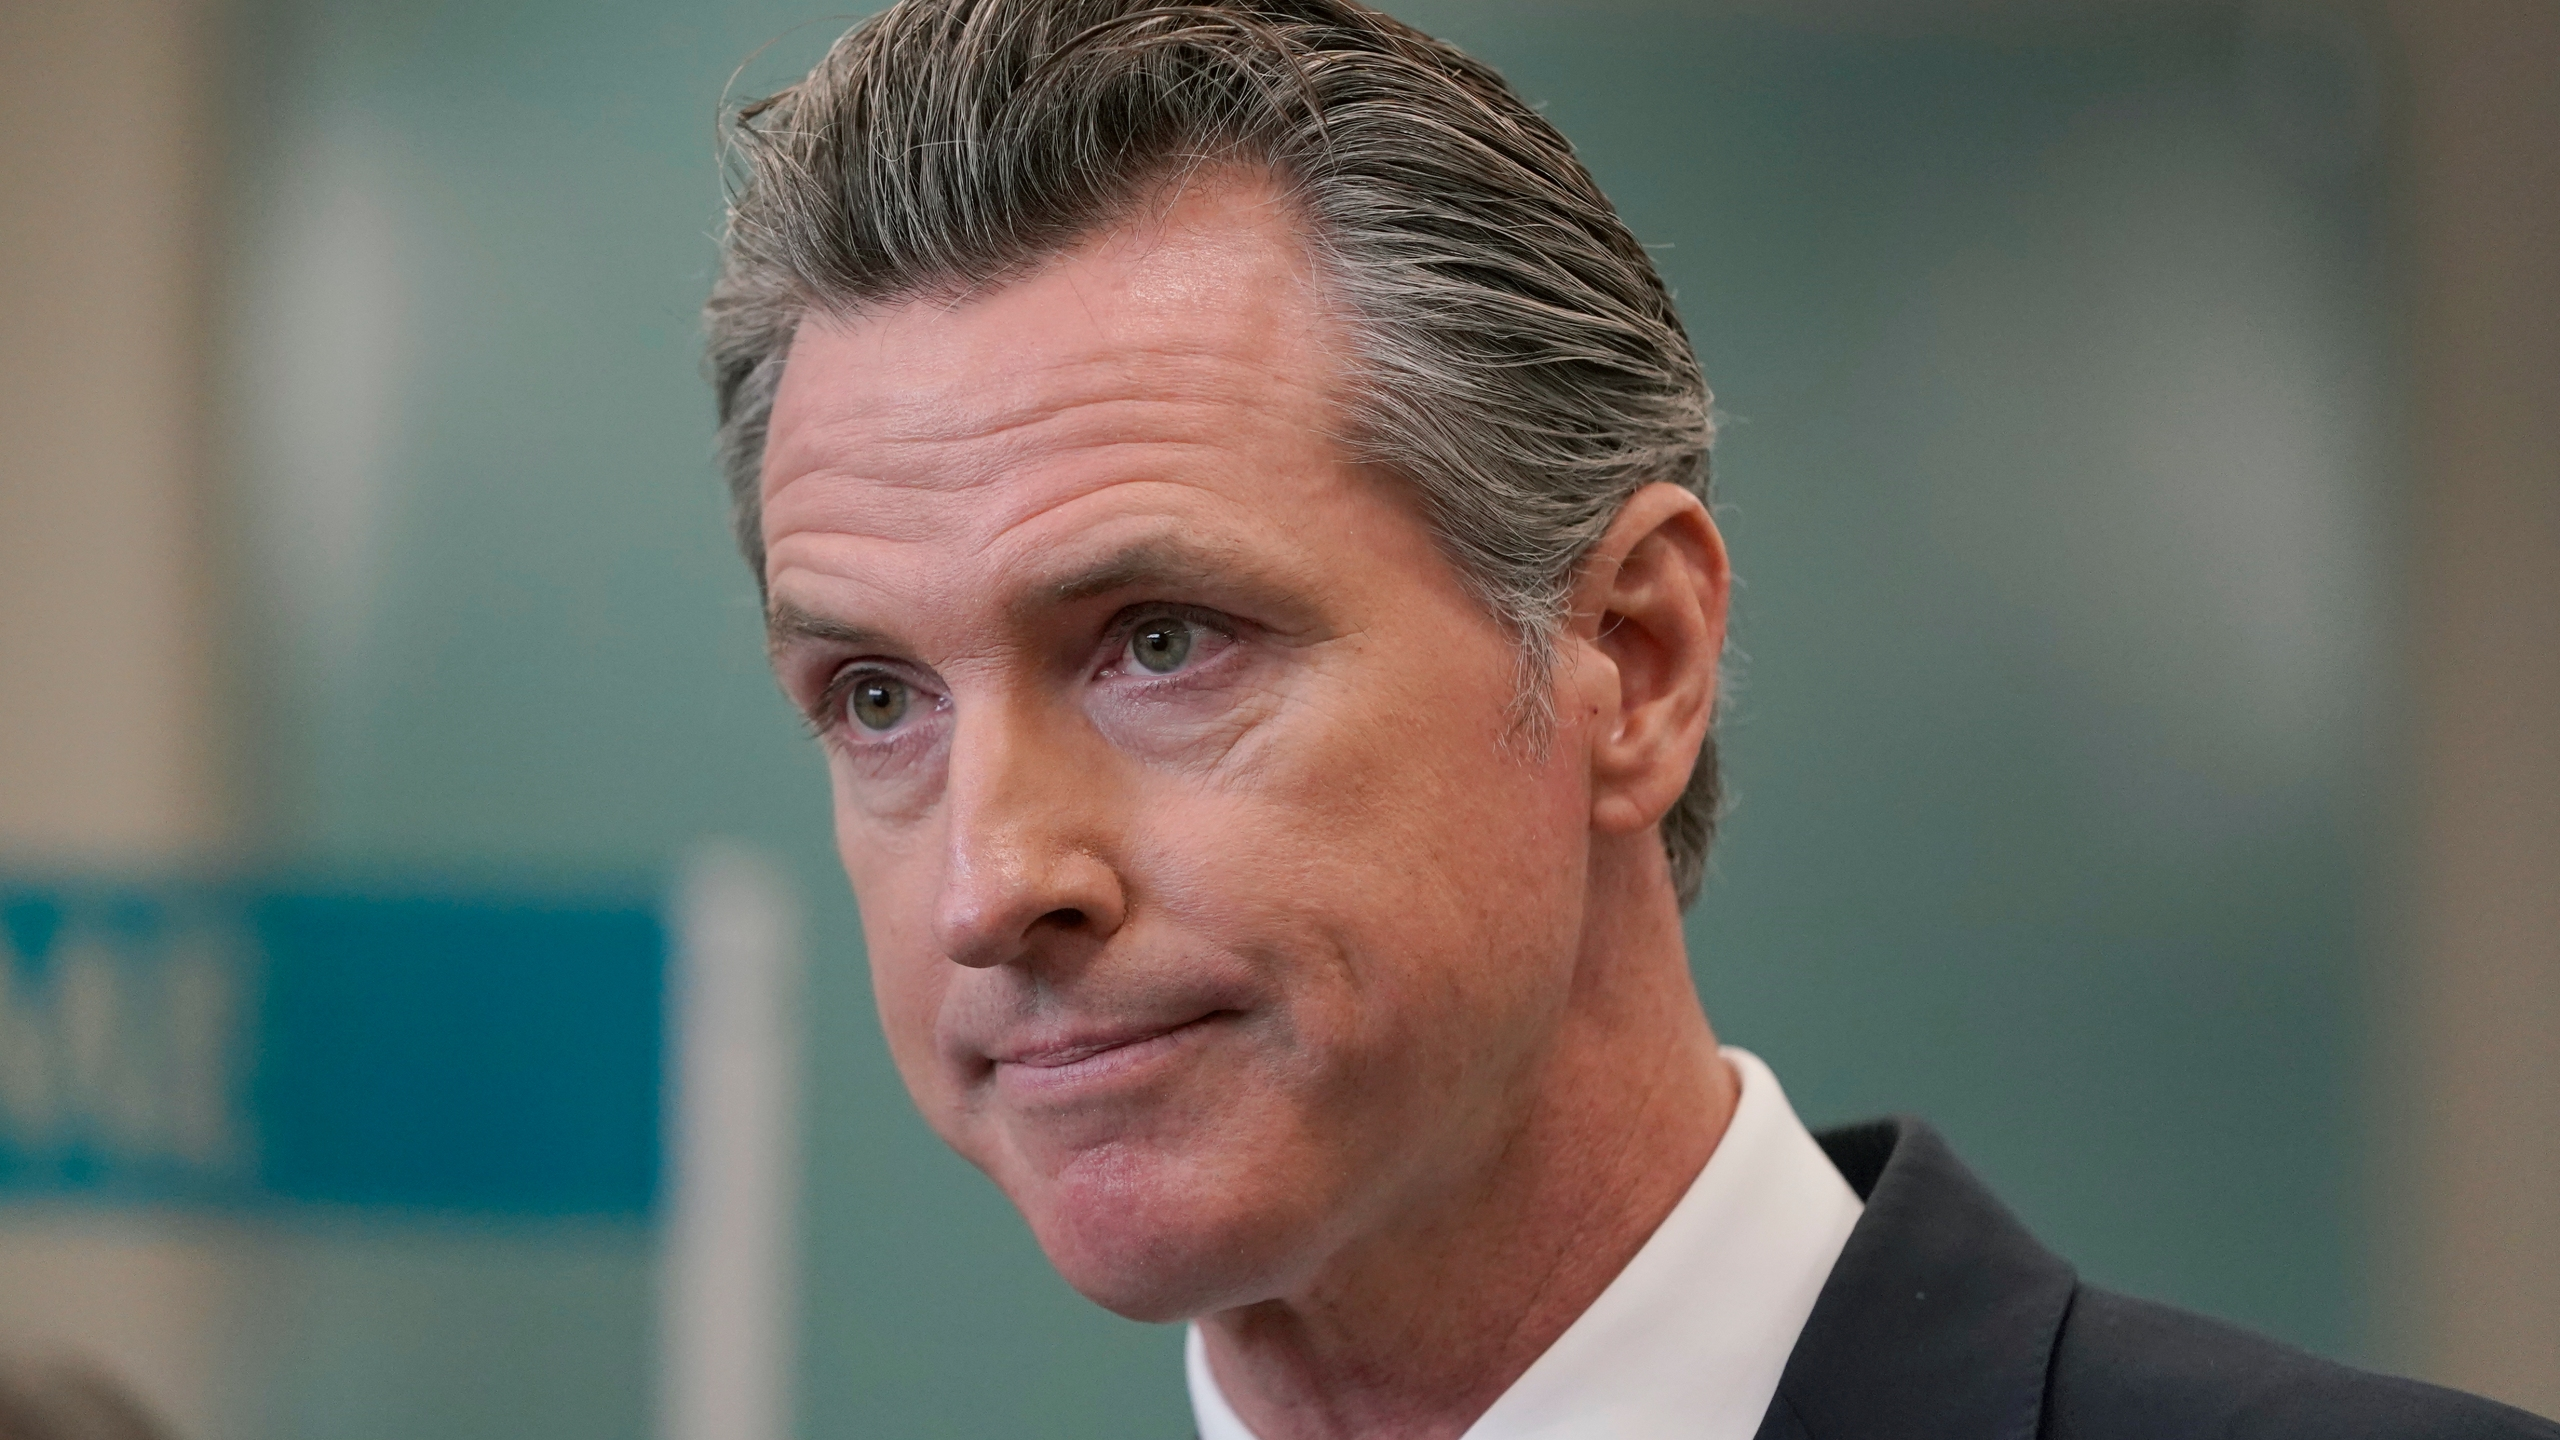 In this July 26, 2021, file photo, Gov. Gavin Newsom appears at a news conference in Oakland. (Jeff Chiu/Associated Press)